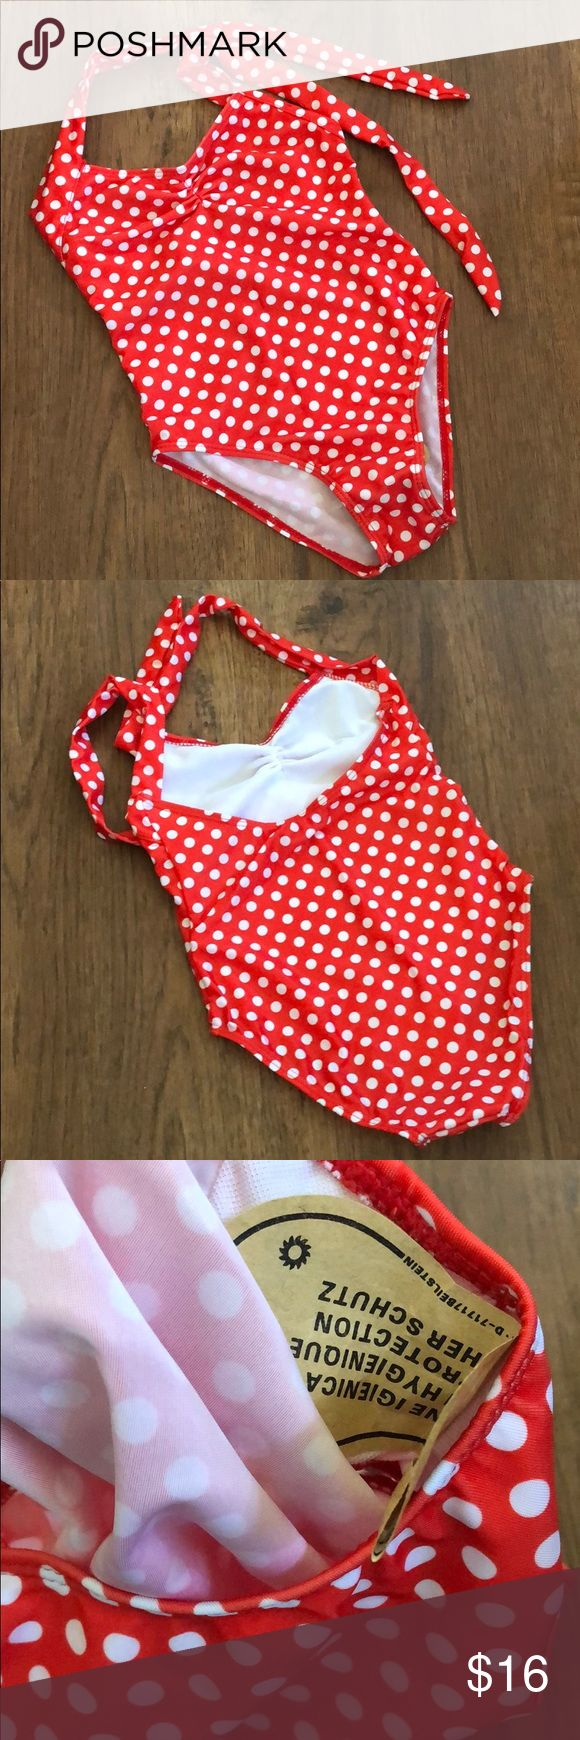 NIP Girls halter swimsuit red polka dot This does not have the proper sizing on …